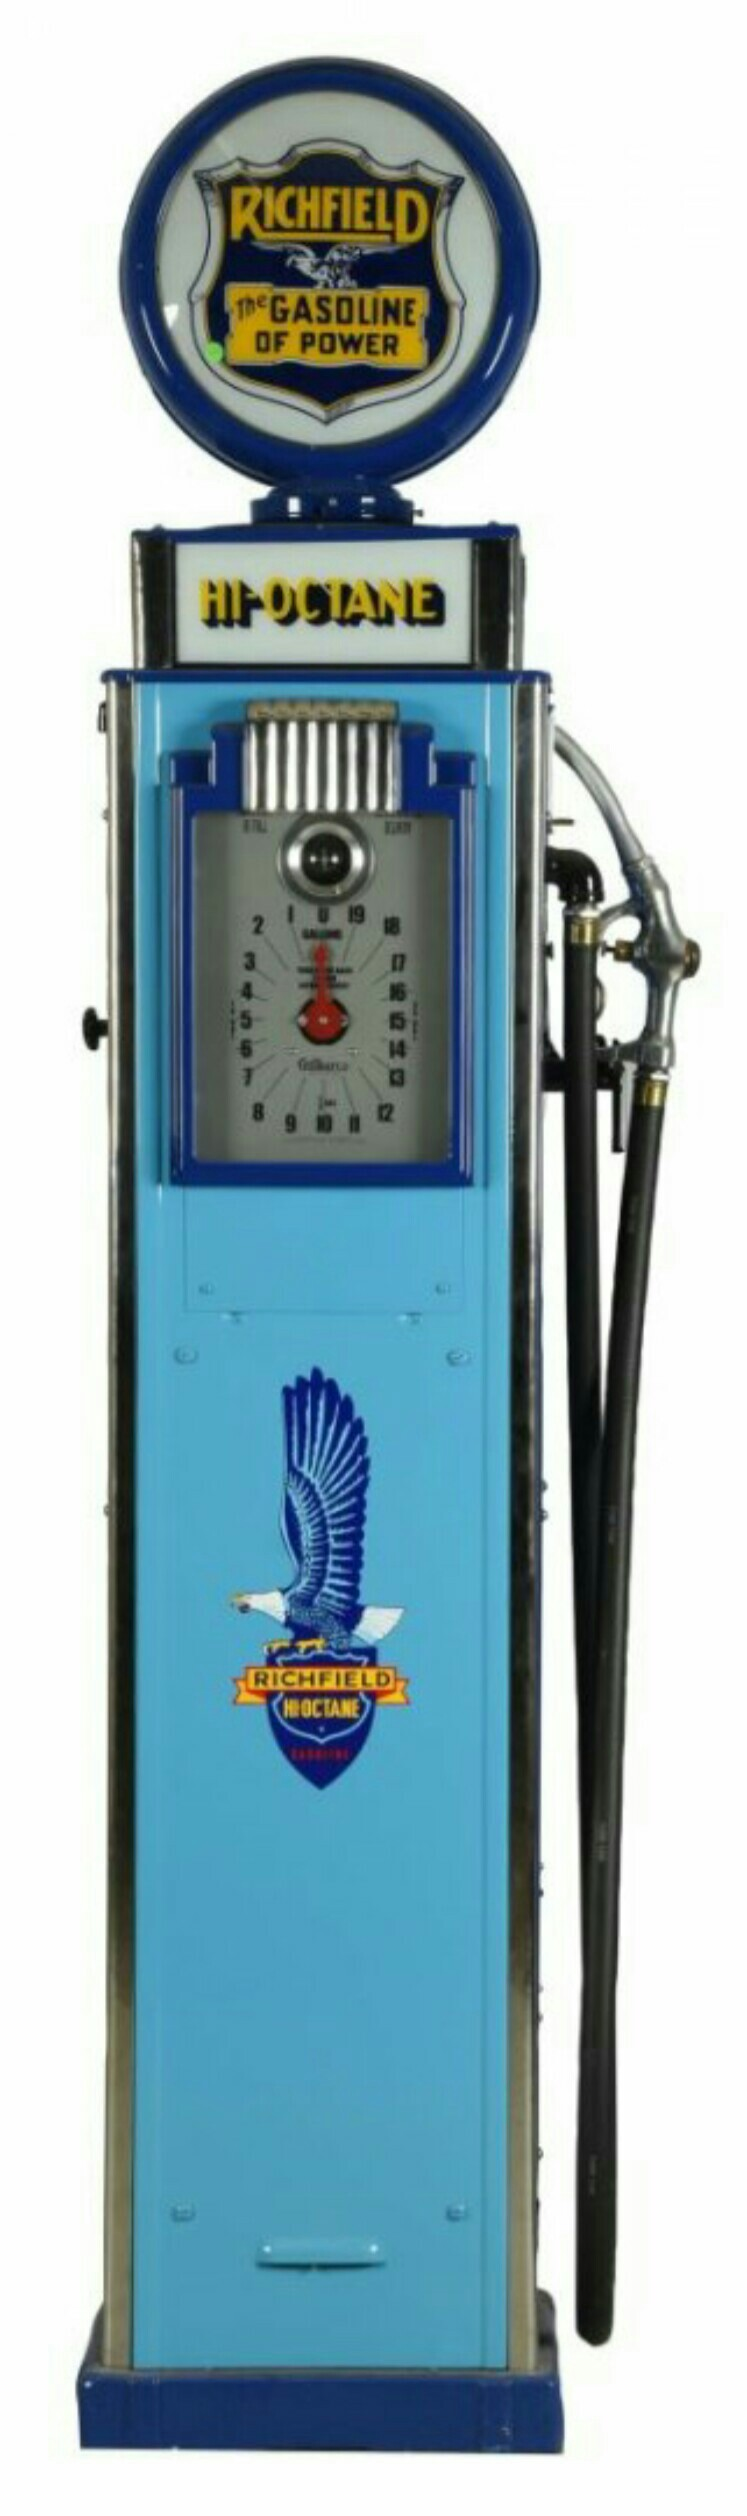 Richfield Hi-Octane Gas Pump | Petroliana | Pinterest ...